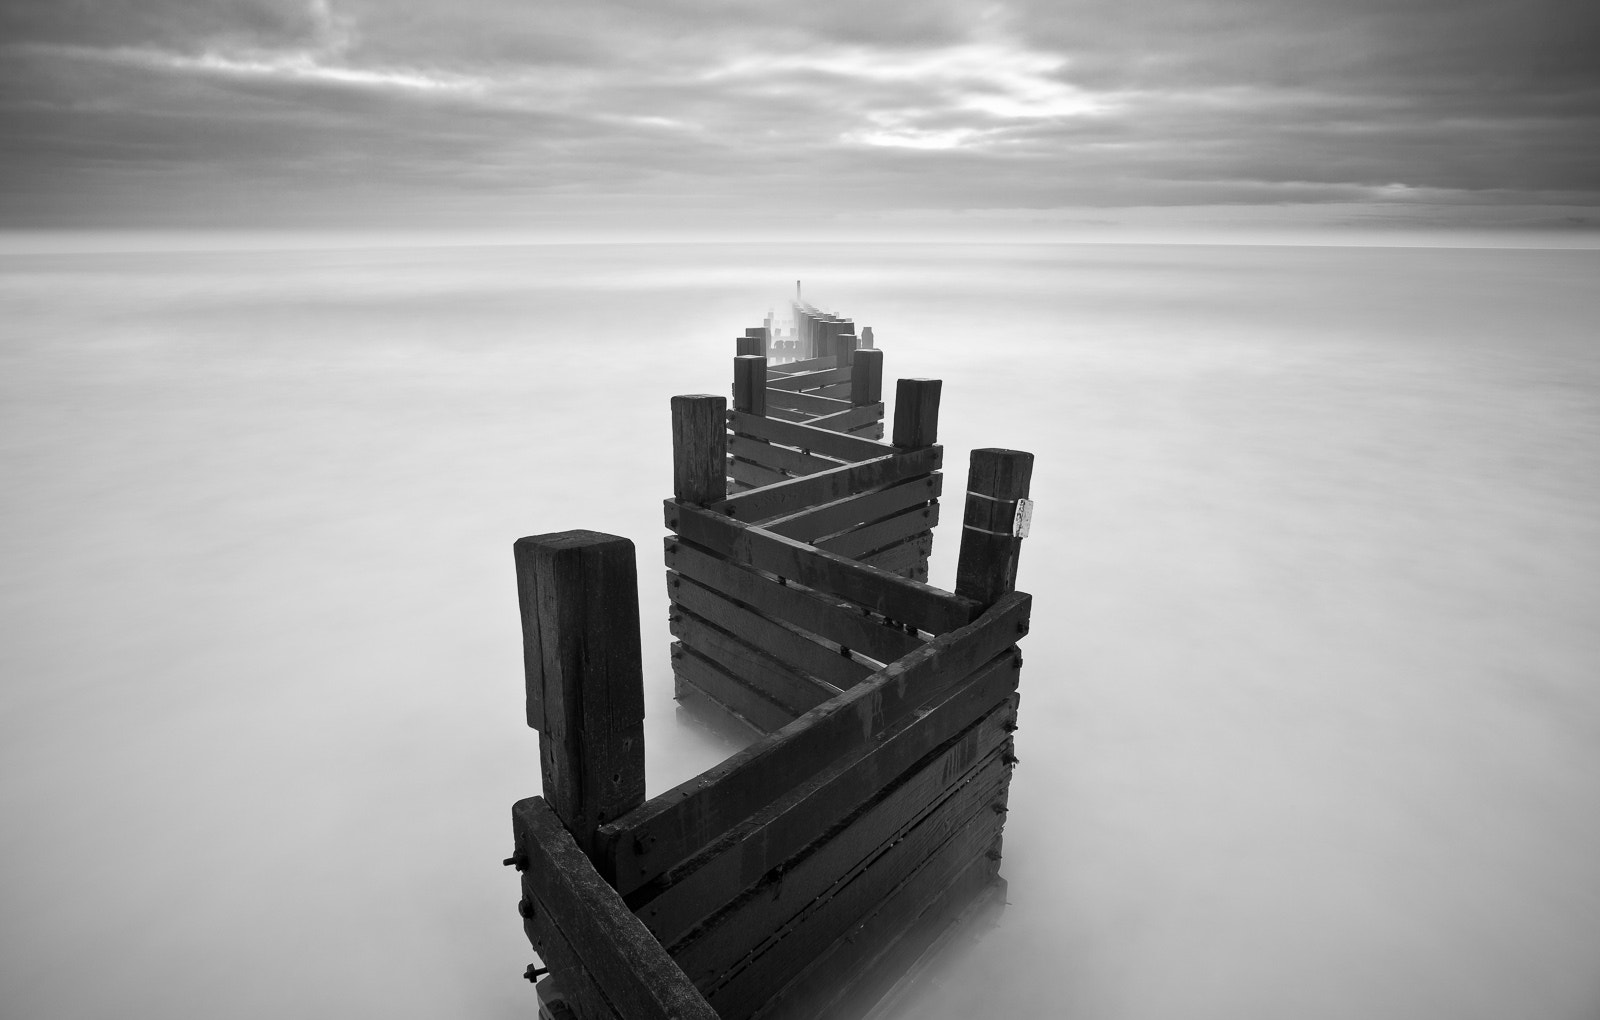 Photograph Zig Zag by Rick Bowden on 500px